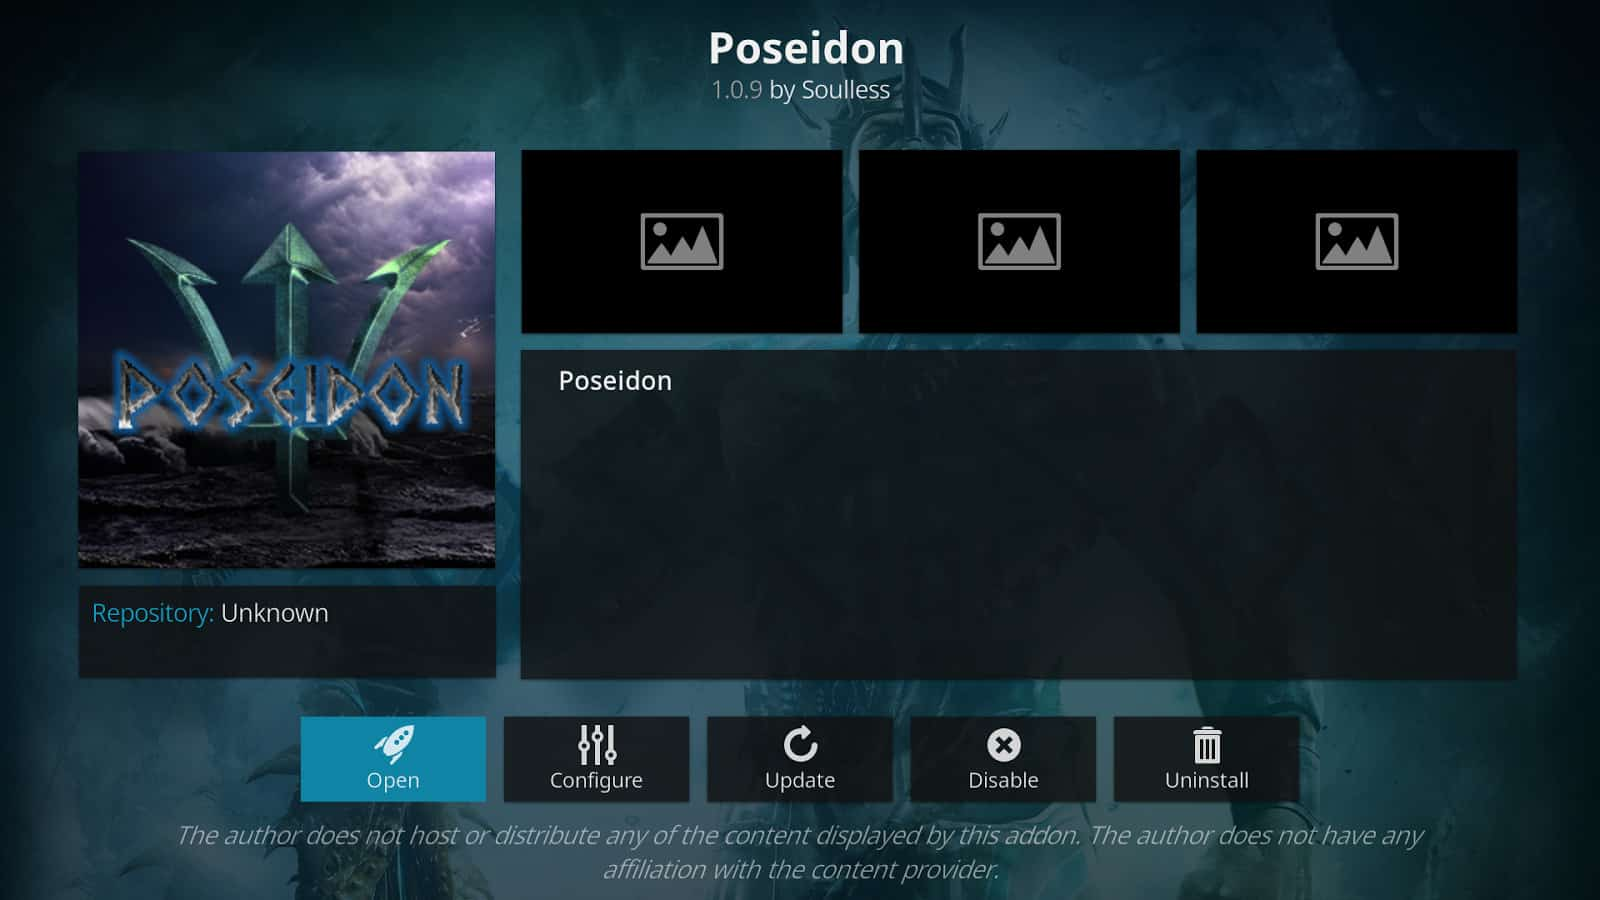 How to Install Poseidon Addon on Kodi 17.6 Krypton Exodus Fork